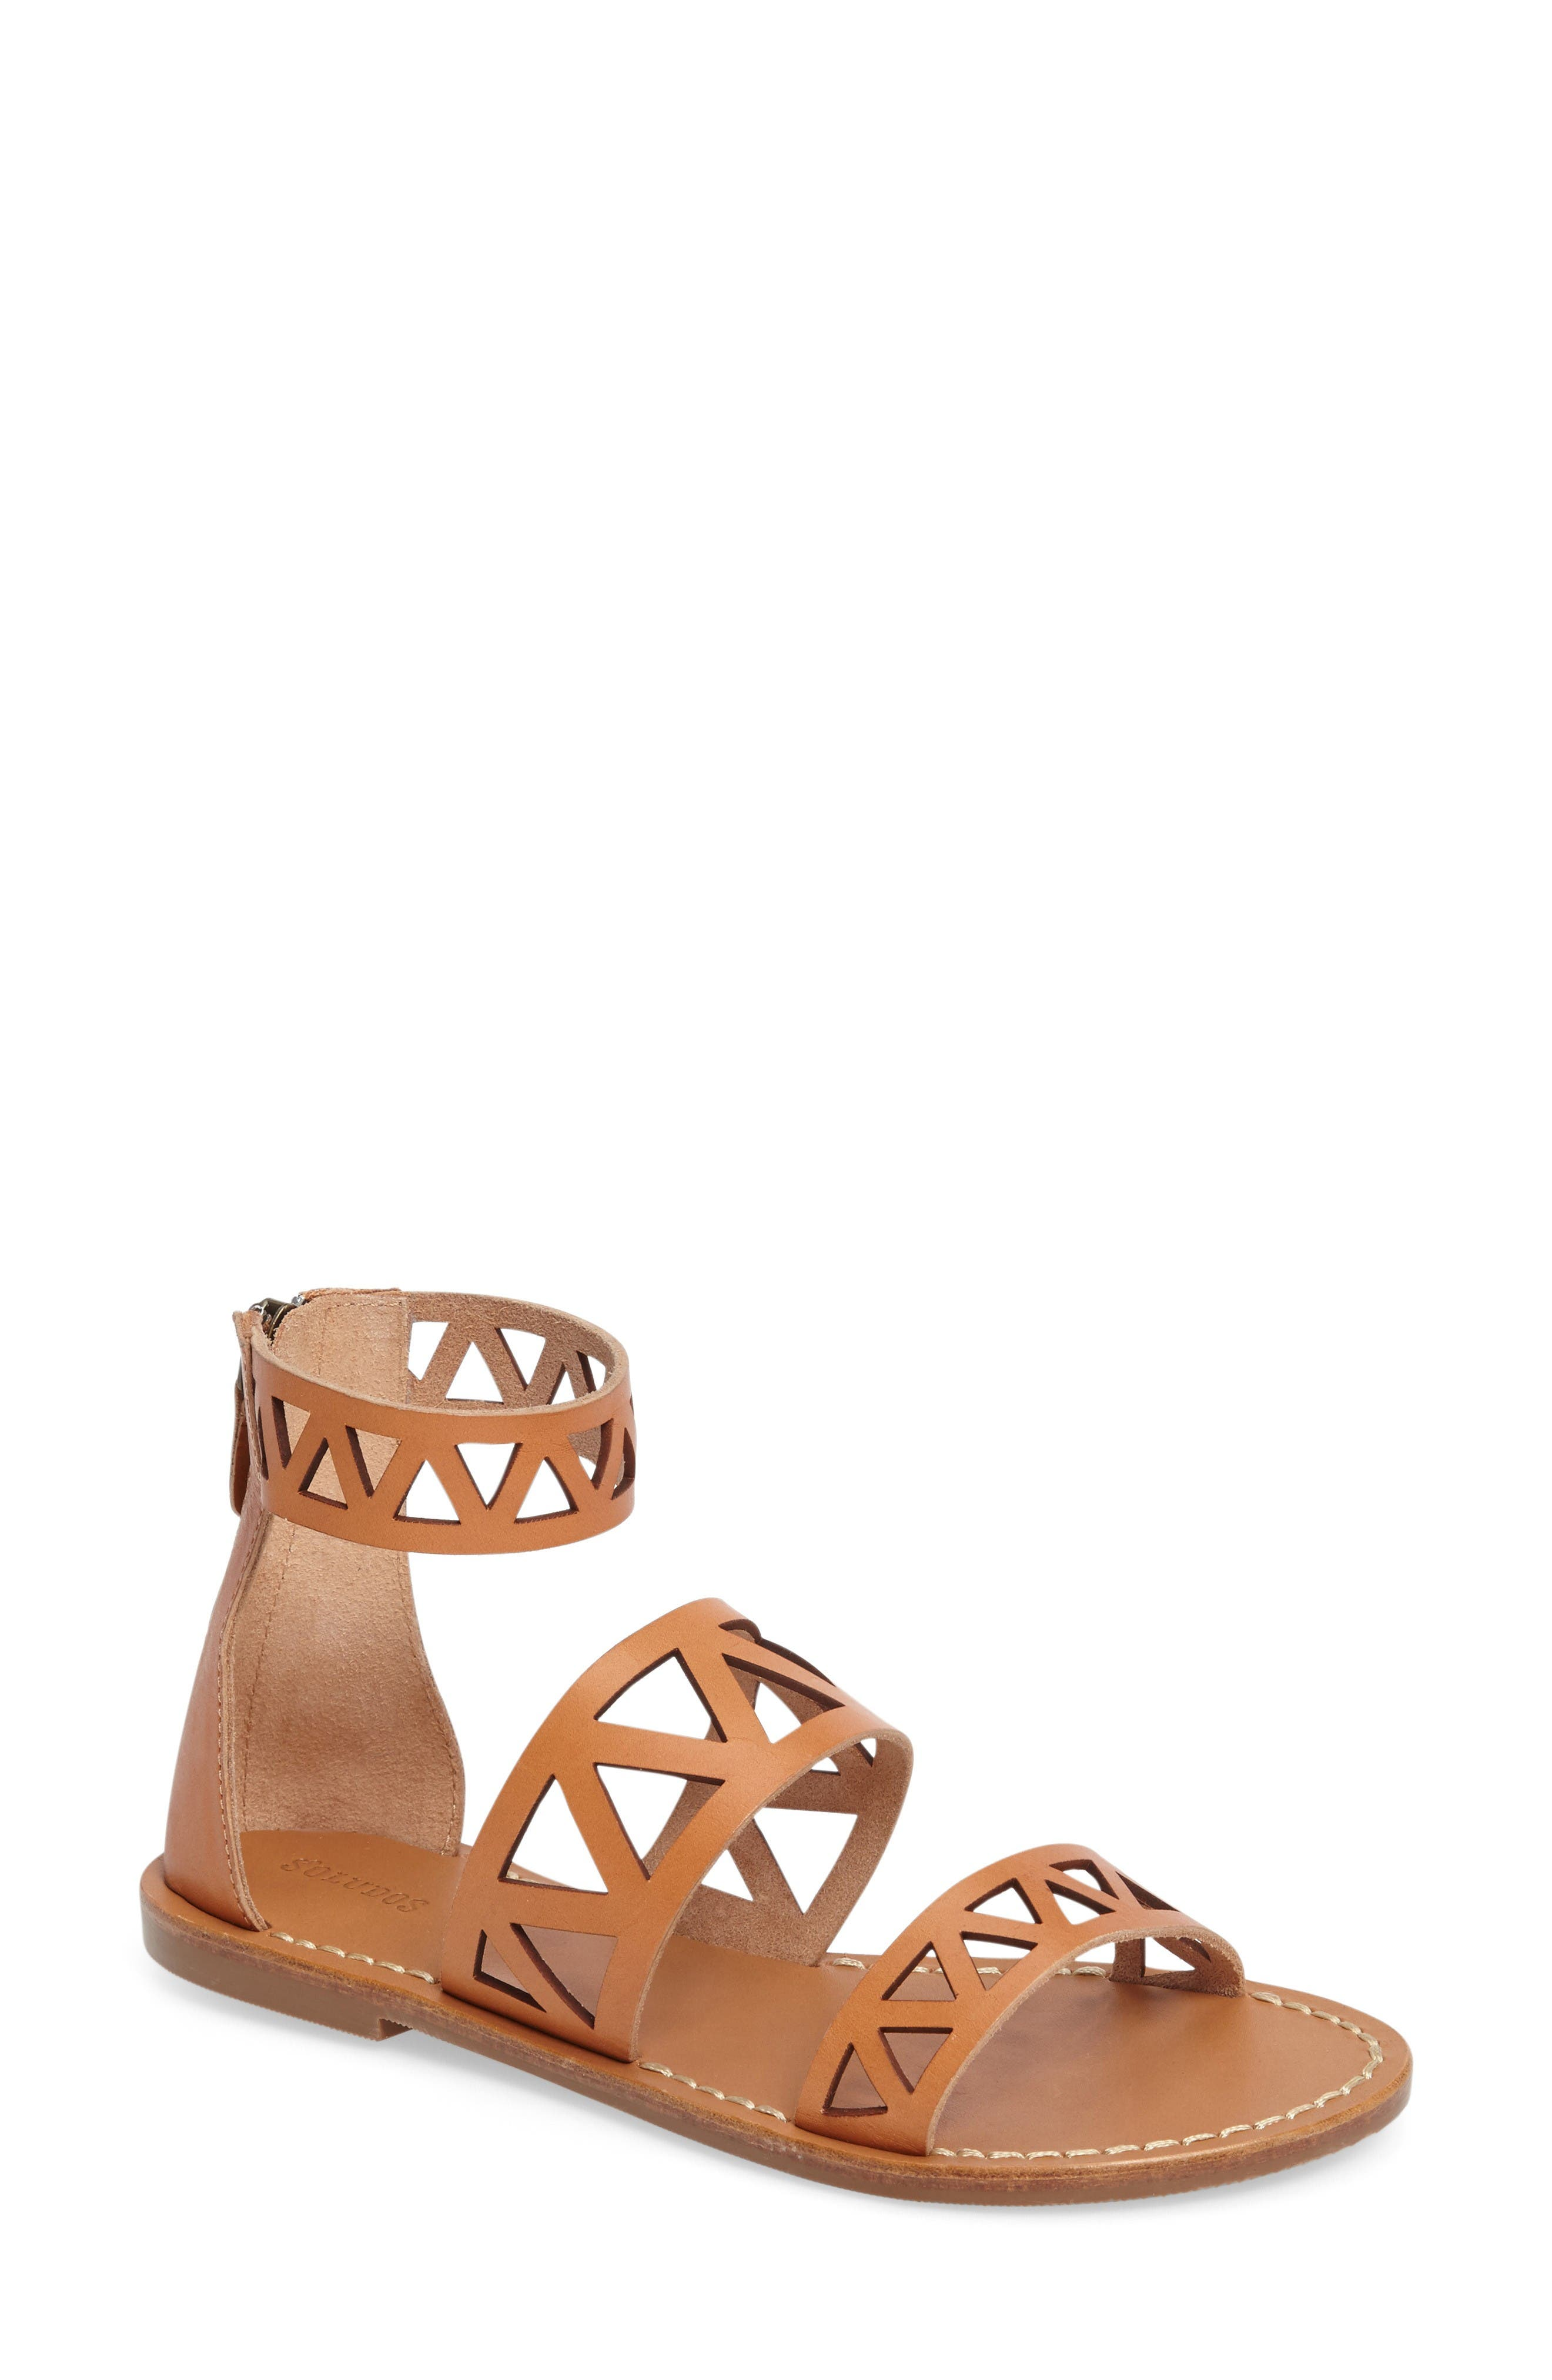 Main Image - Soludos Ankle Cuff Sandal (Women)